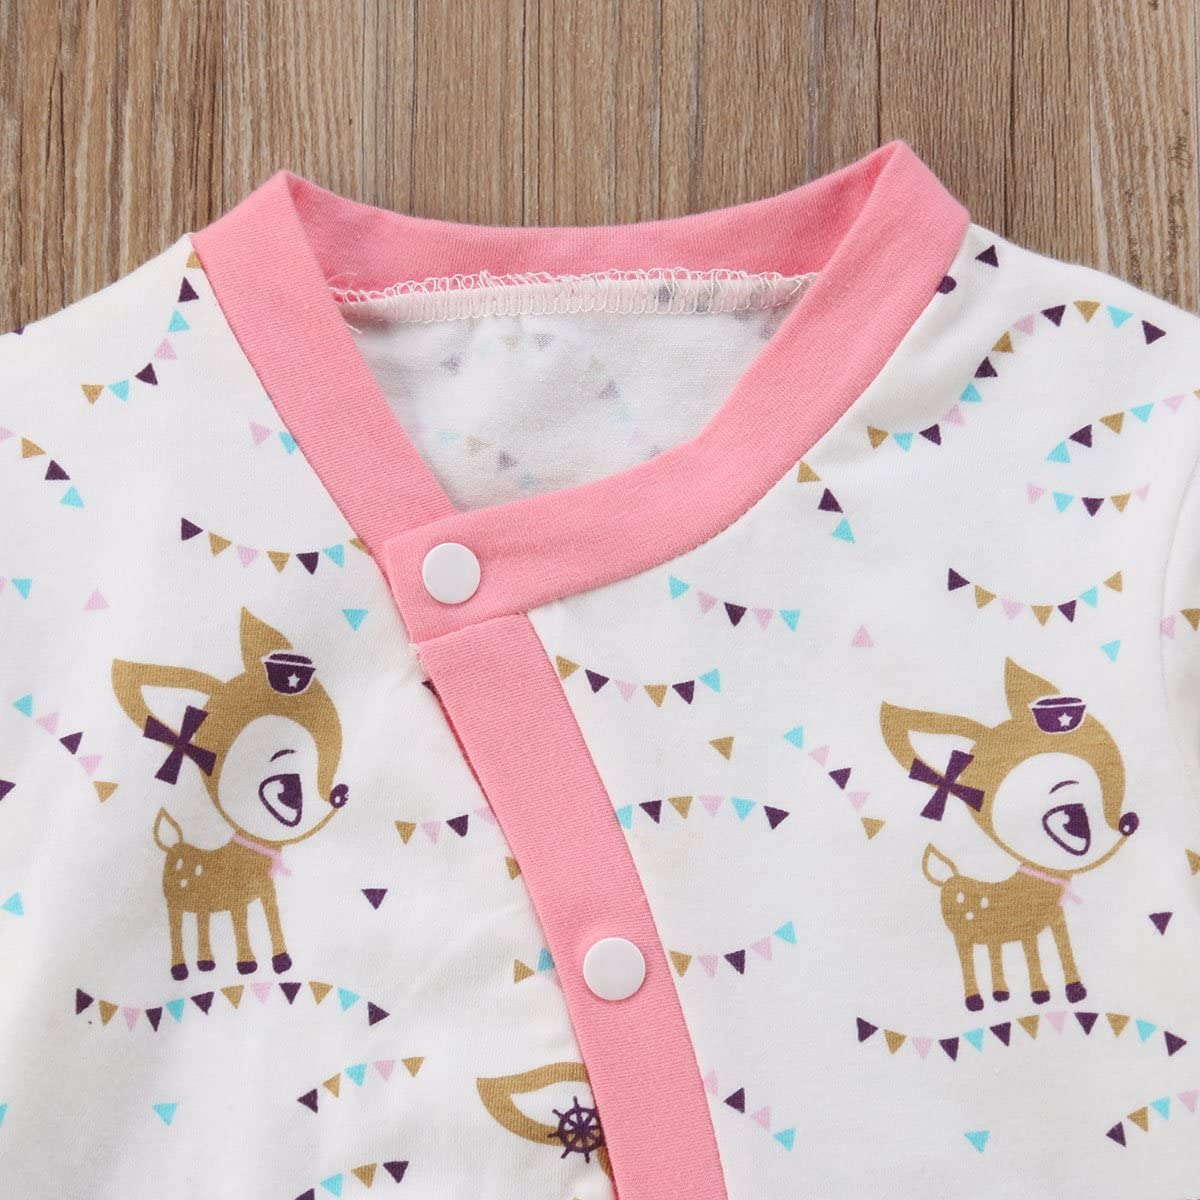 VISGOGO Baby Clothing Newborn Baby Boys Girls Cartoon Deer Print Romper Long Sleeve Cotton Jumpsuit Outfits Clothes